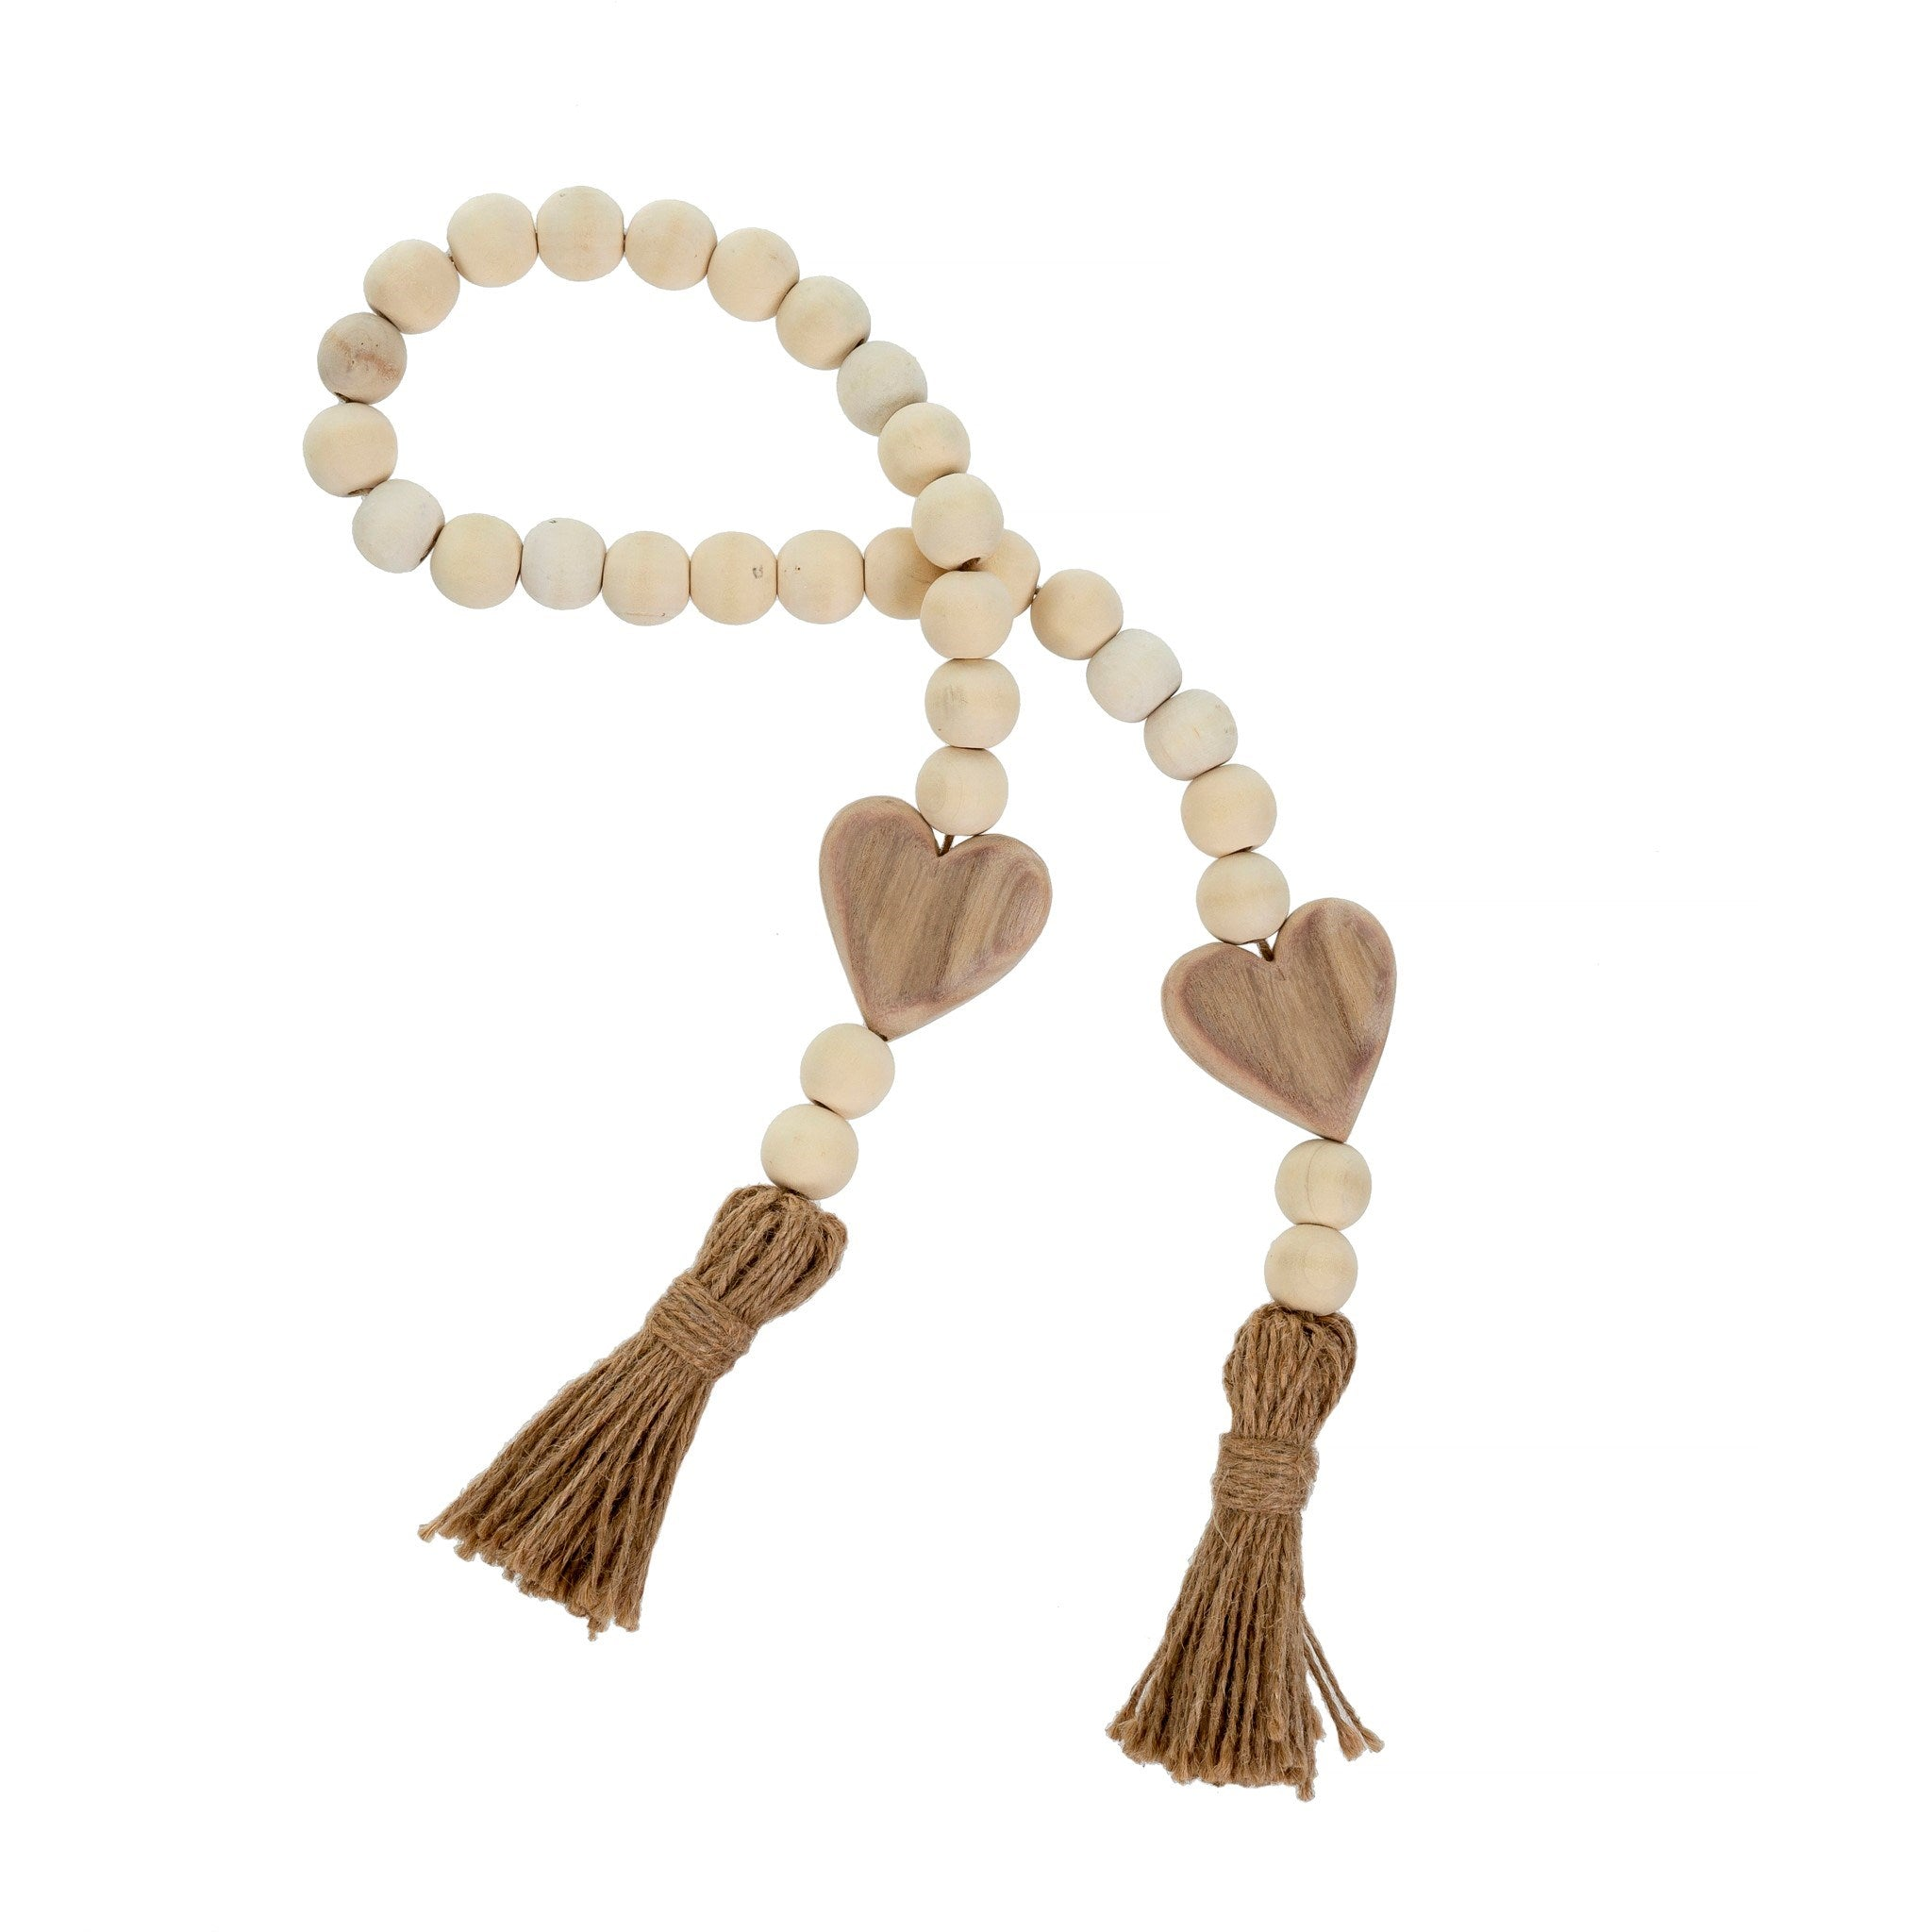 DECORATIVE BEADS BLESSING